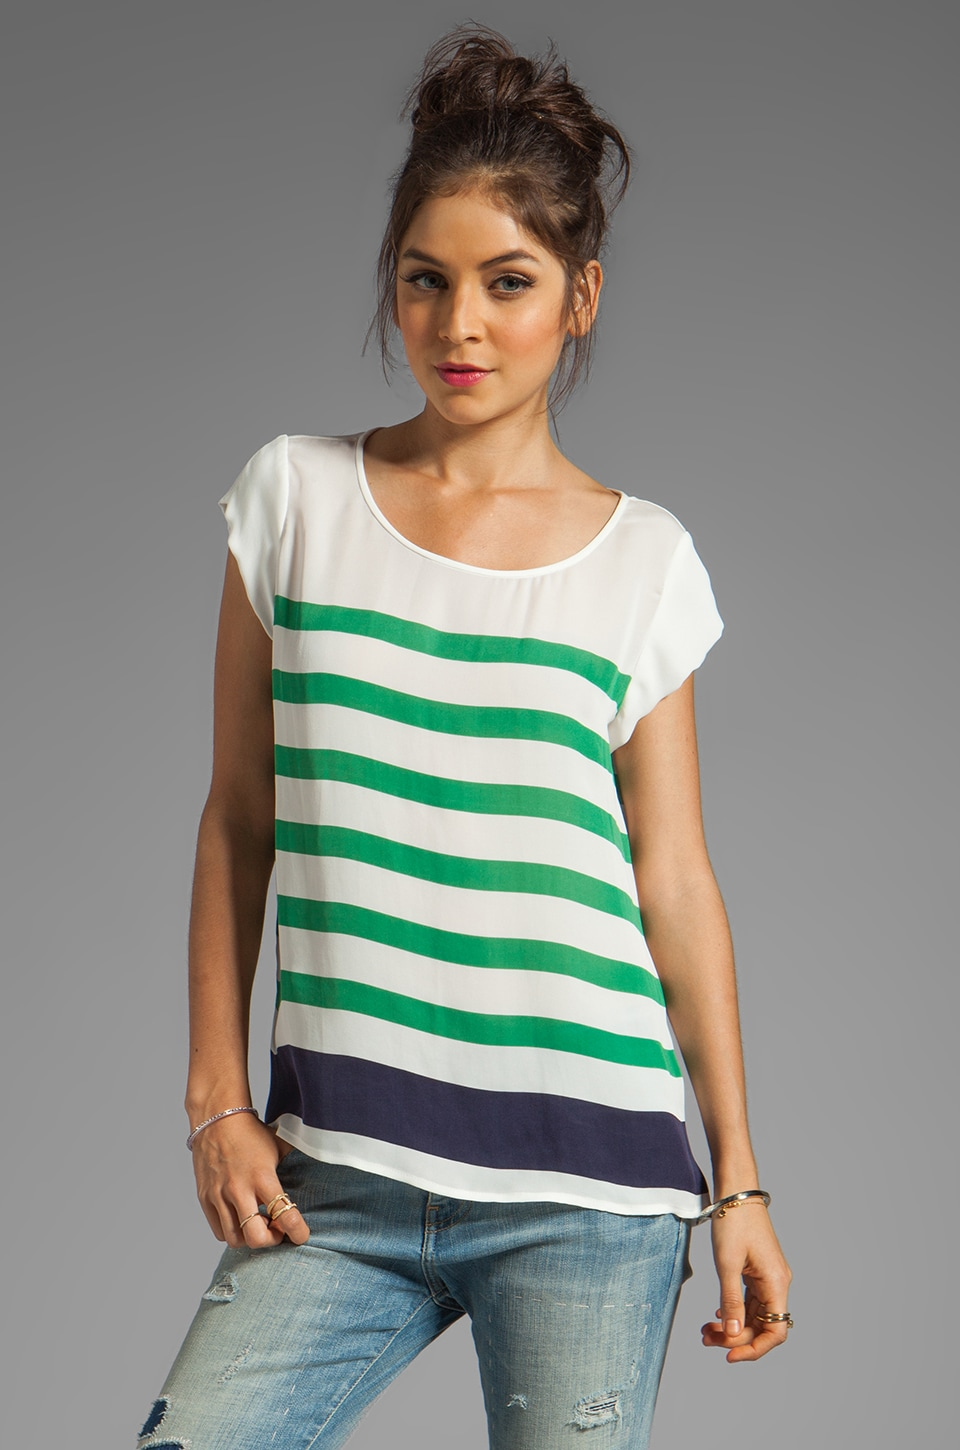 Joie Terry Stripe Print Top in Golf Green